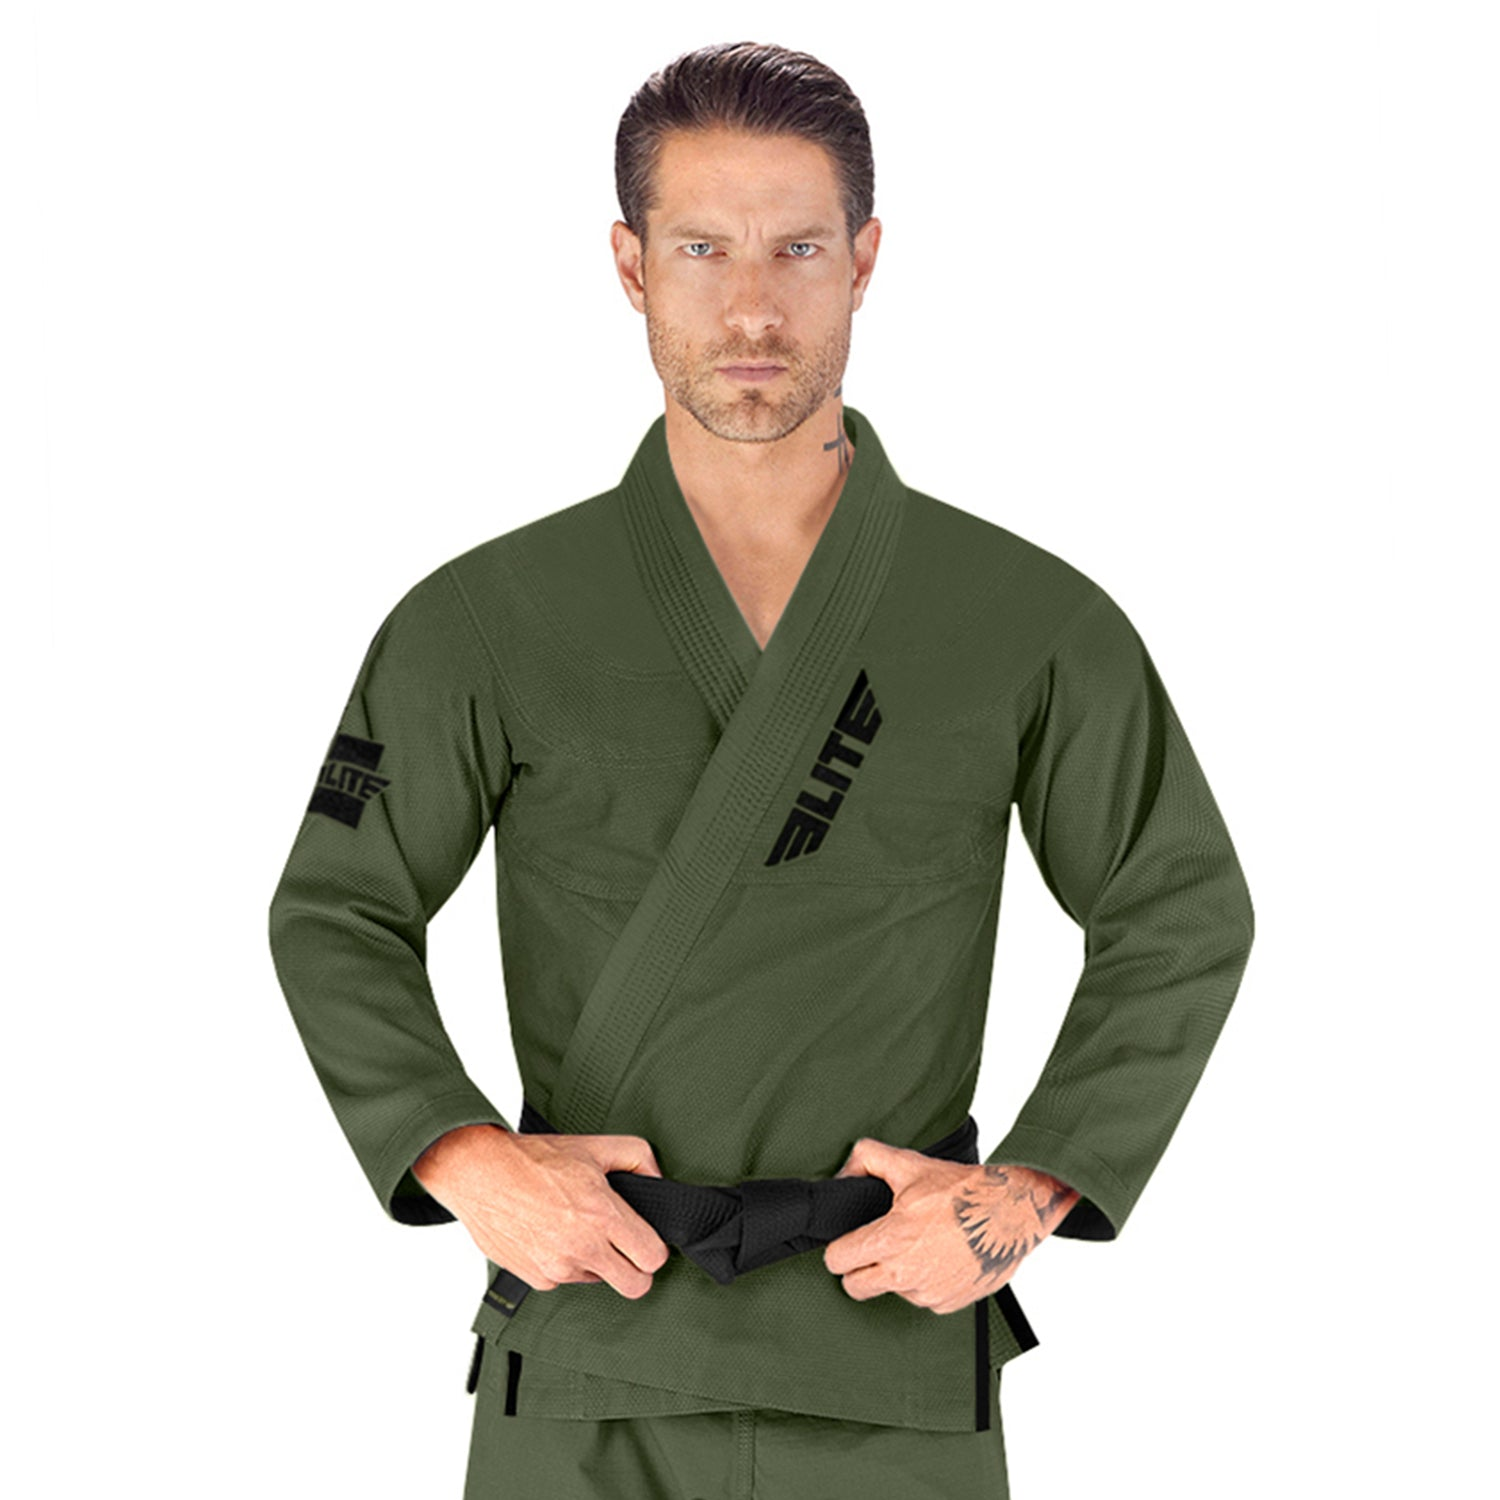 Elite Sports Ultra Light Preshrunk Military Green Adult Brazilian Jiu Jitsu BJJ Gi With Free White Belt